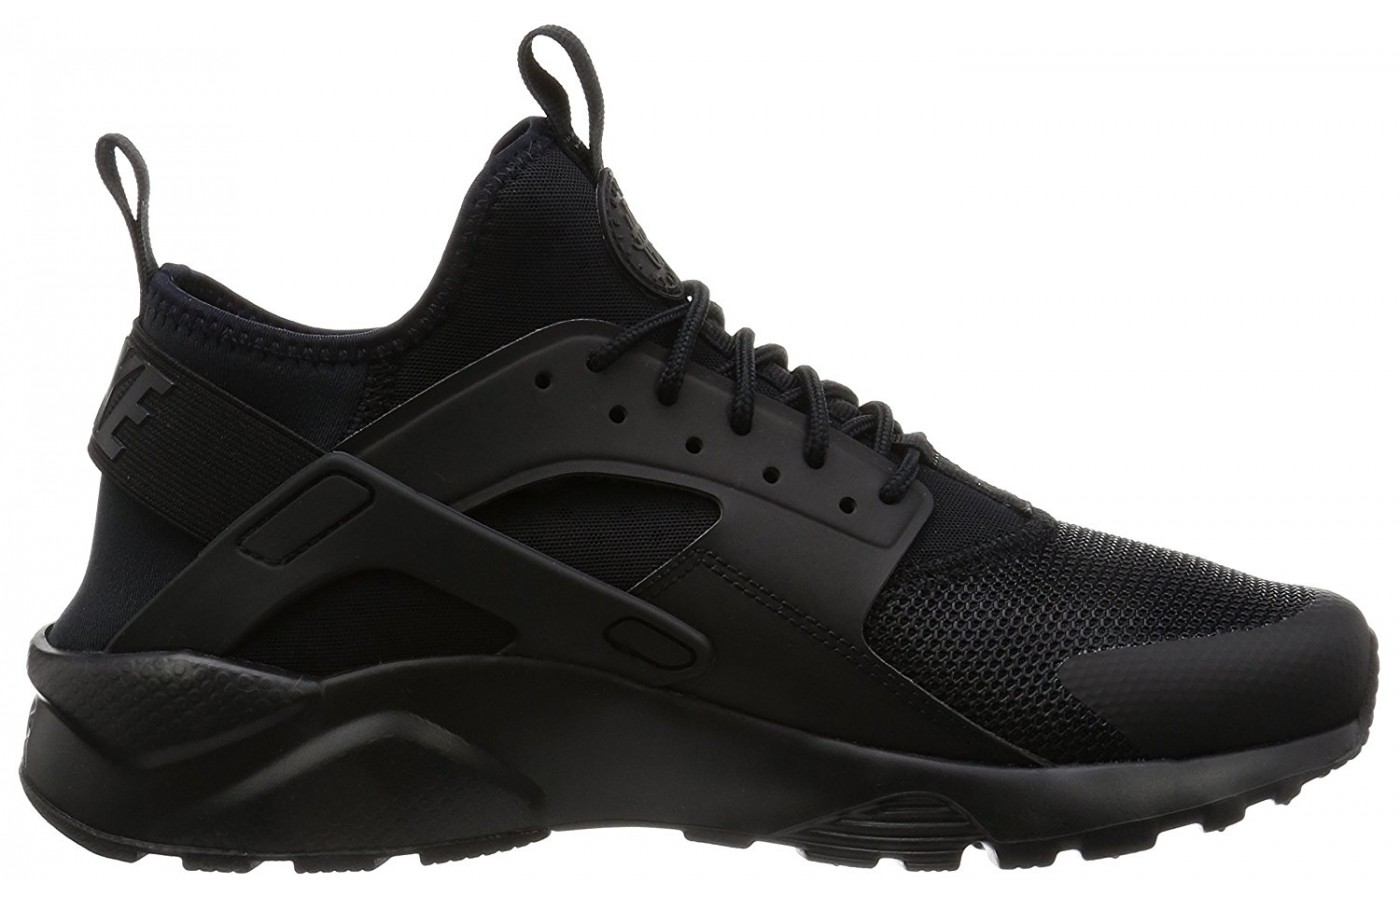 a04c082f305b Nike Air Huarache Ultra Reviewed   Tested for Performance - WalkJogRun